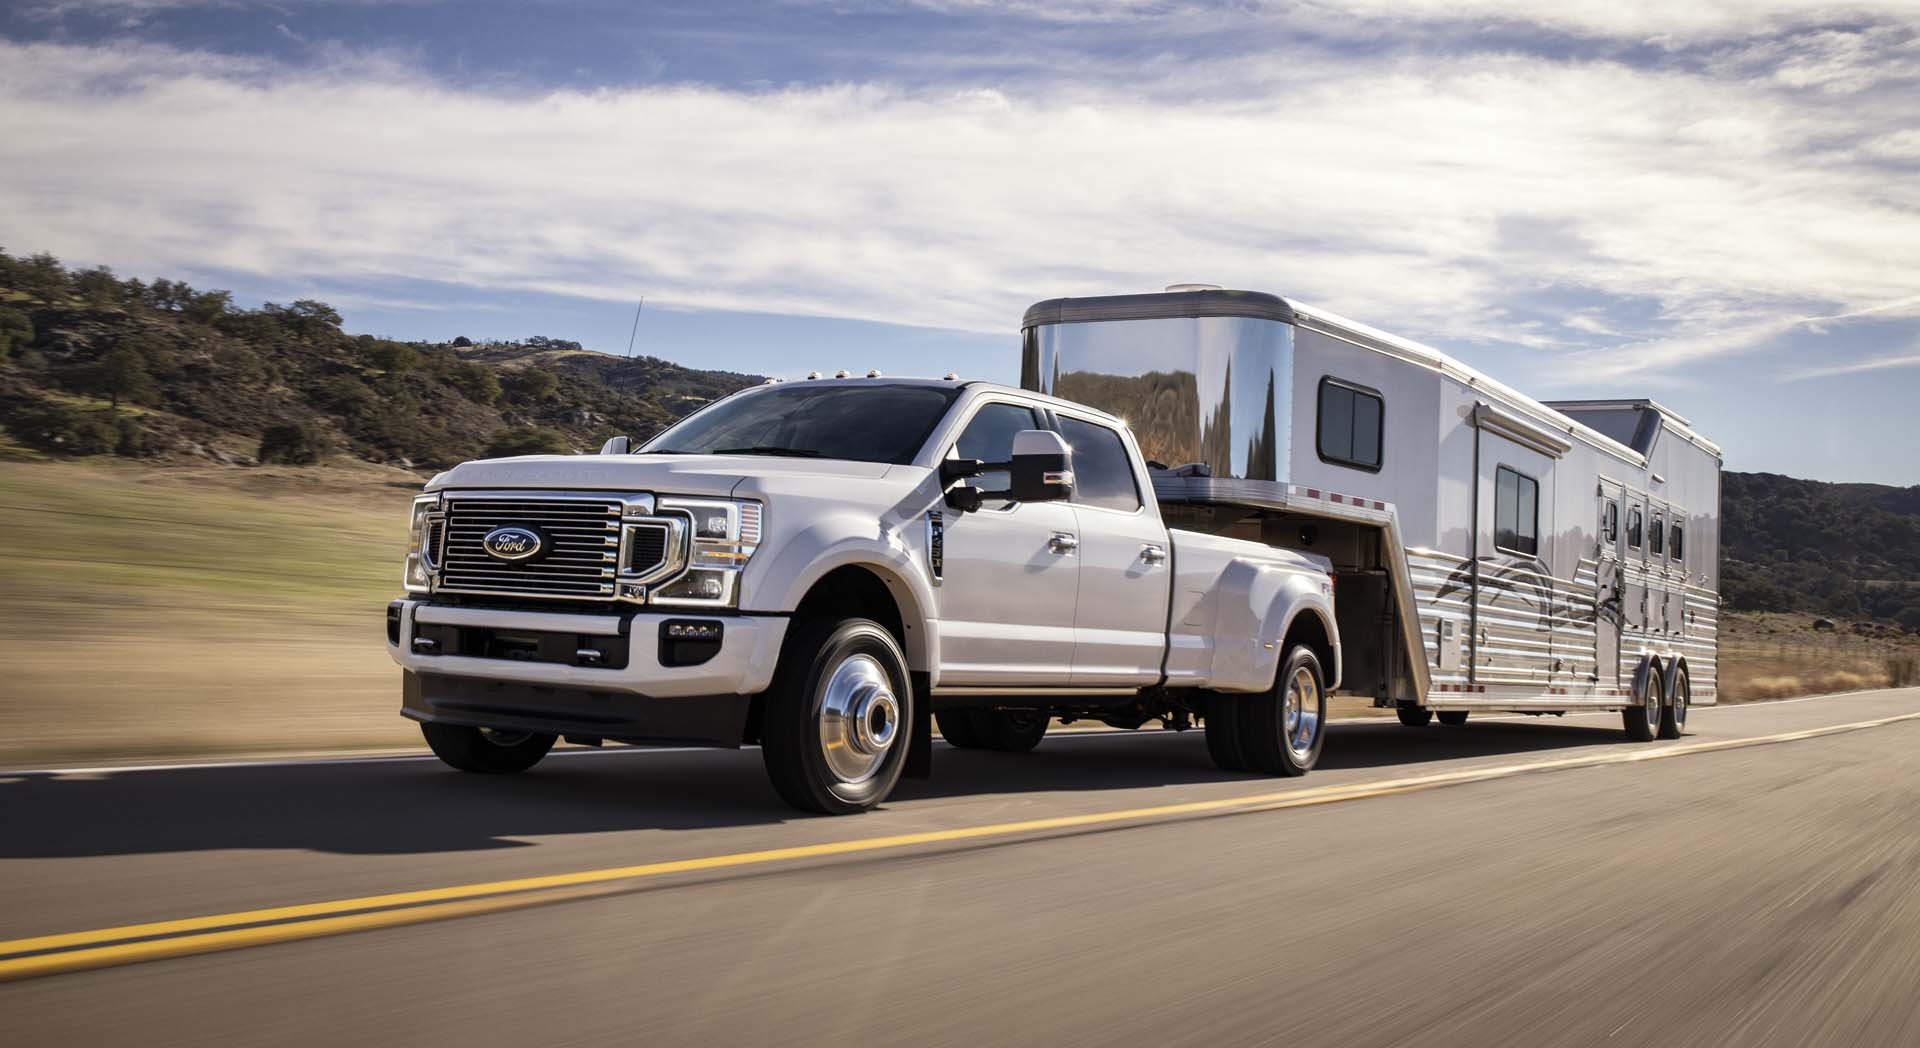 2020 Ford F-250 Super Duty revealed: More power, more gears, more tech